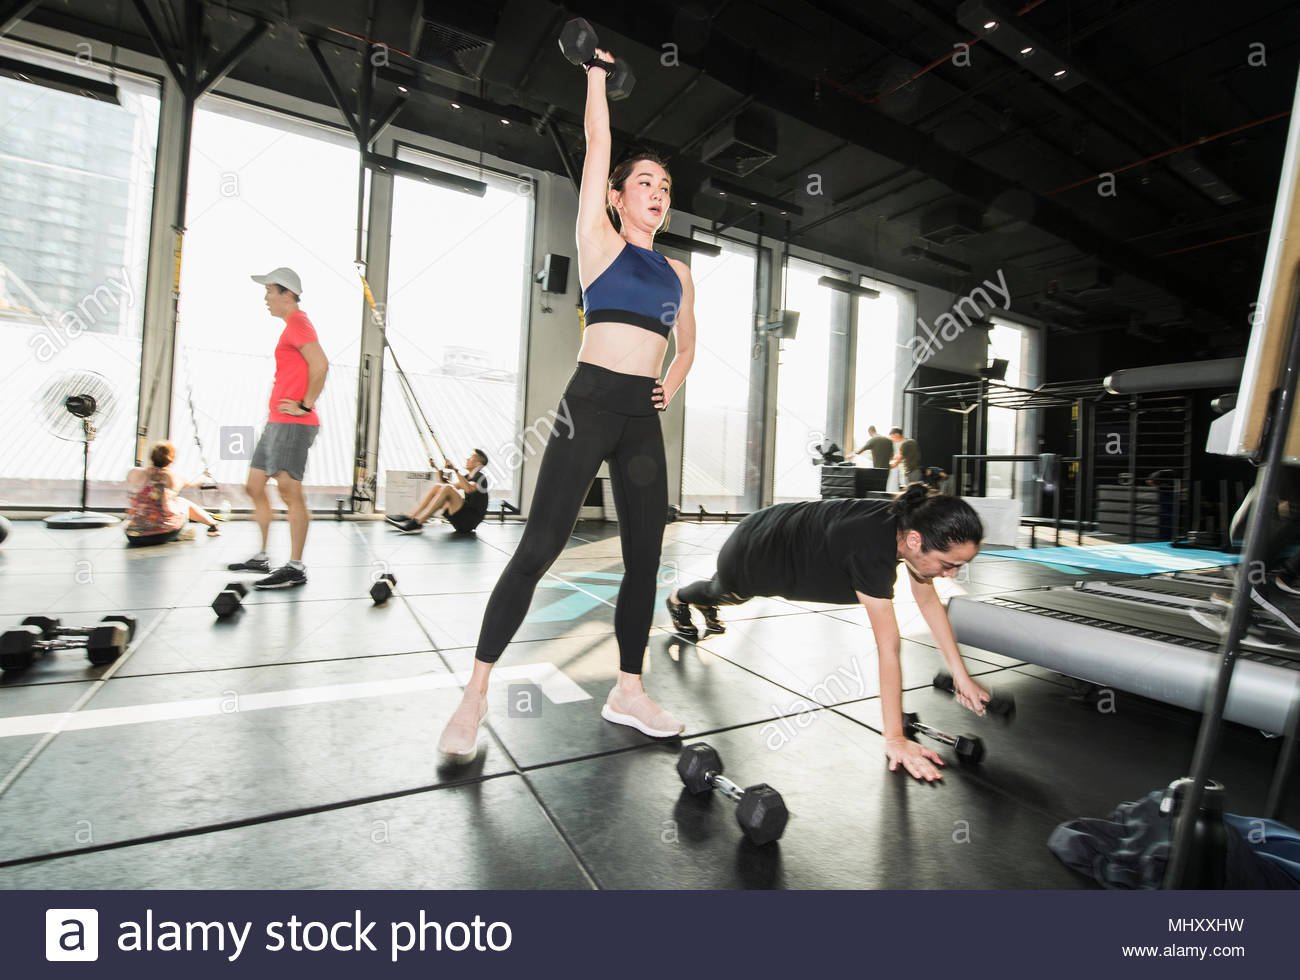 Group of people working out in gym, lifting weights - Stock Image